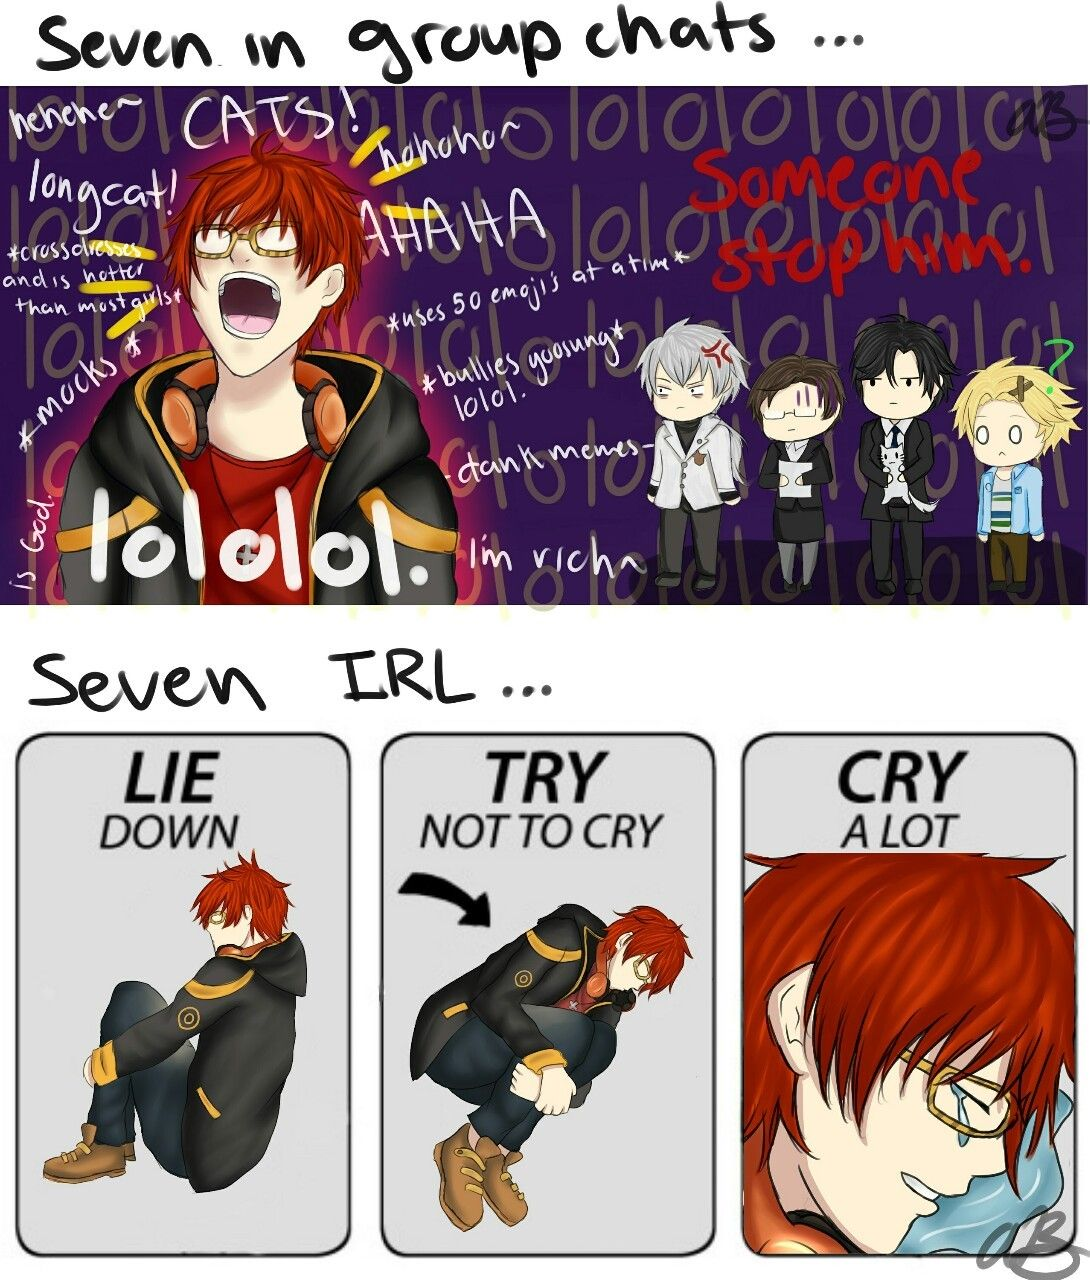 Because Mystic Messenger is taking over my life, I made